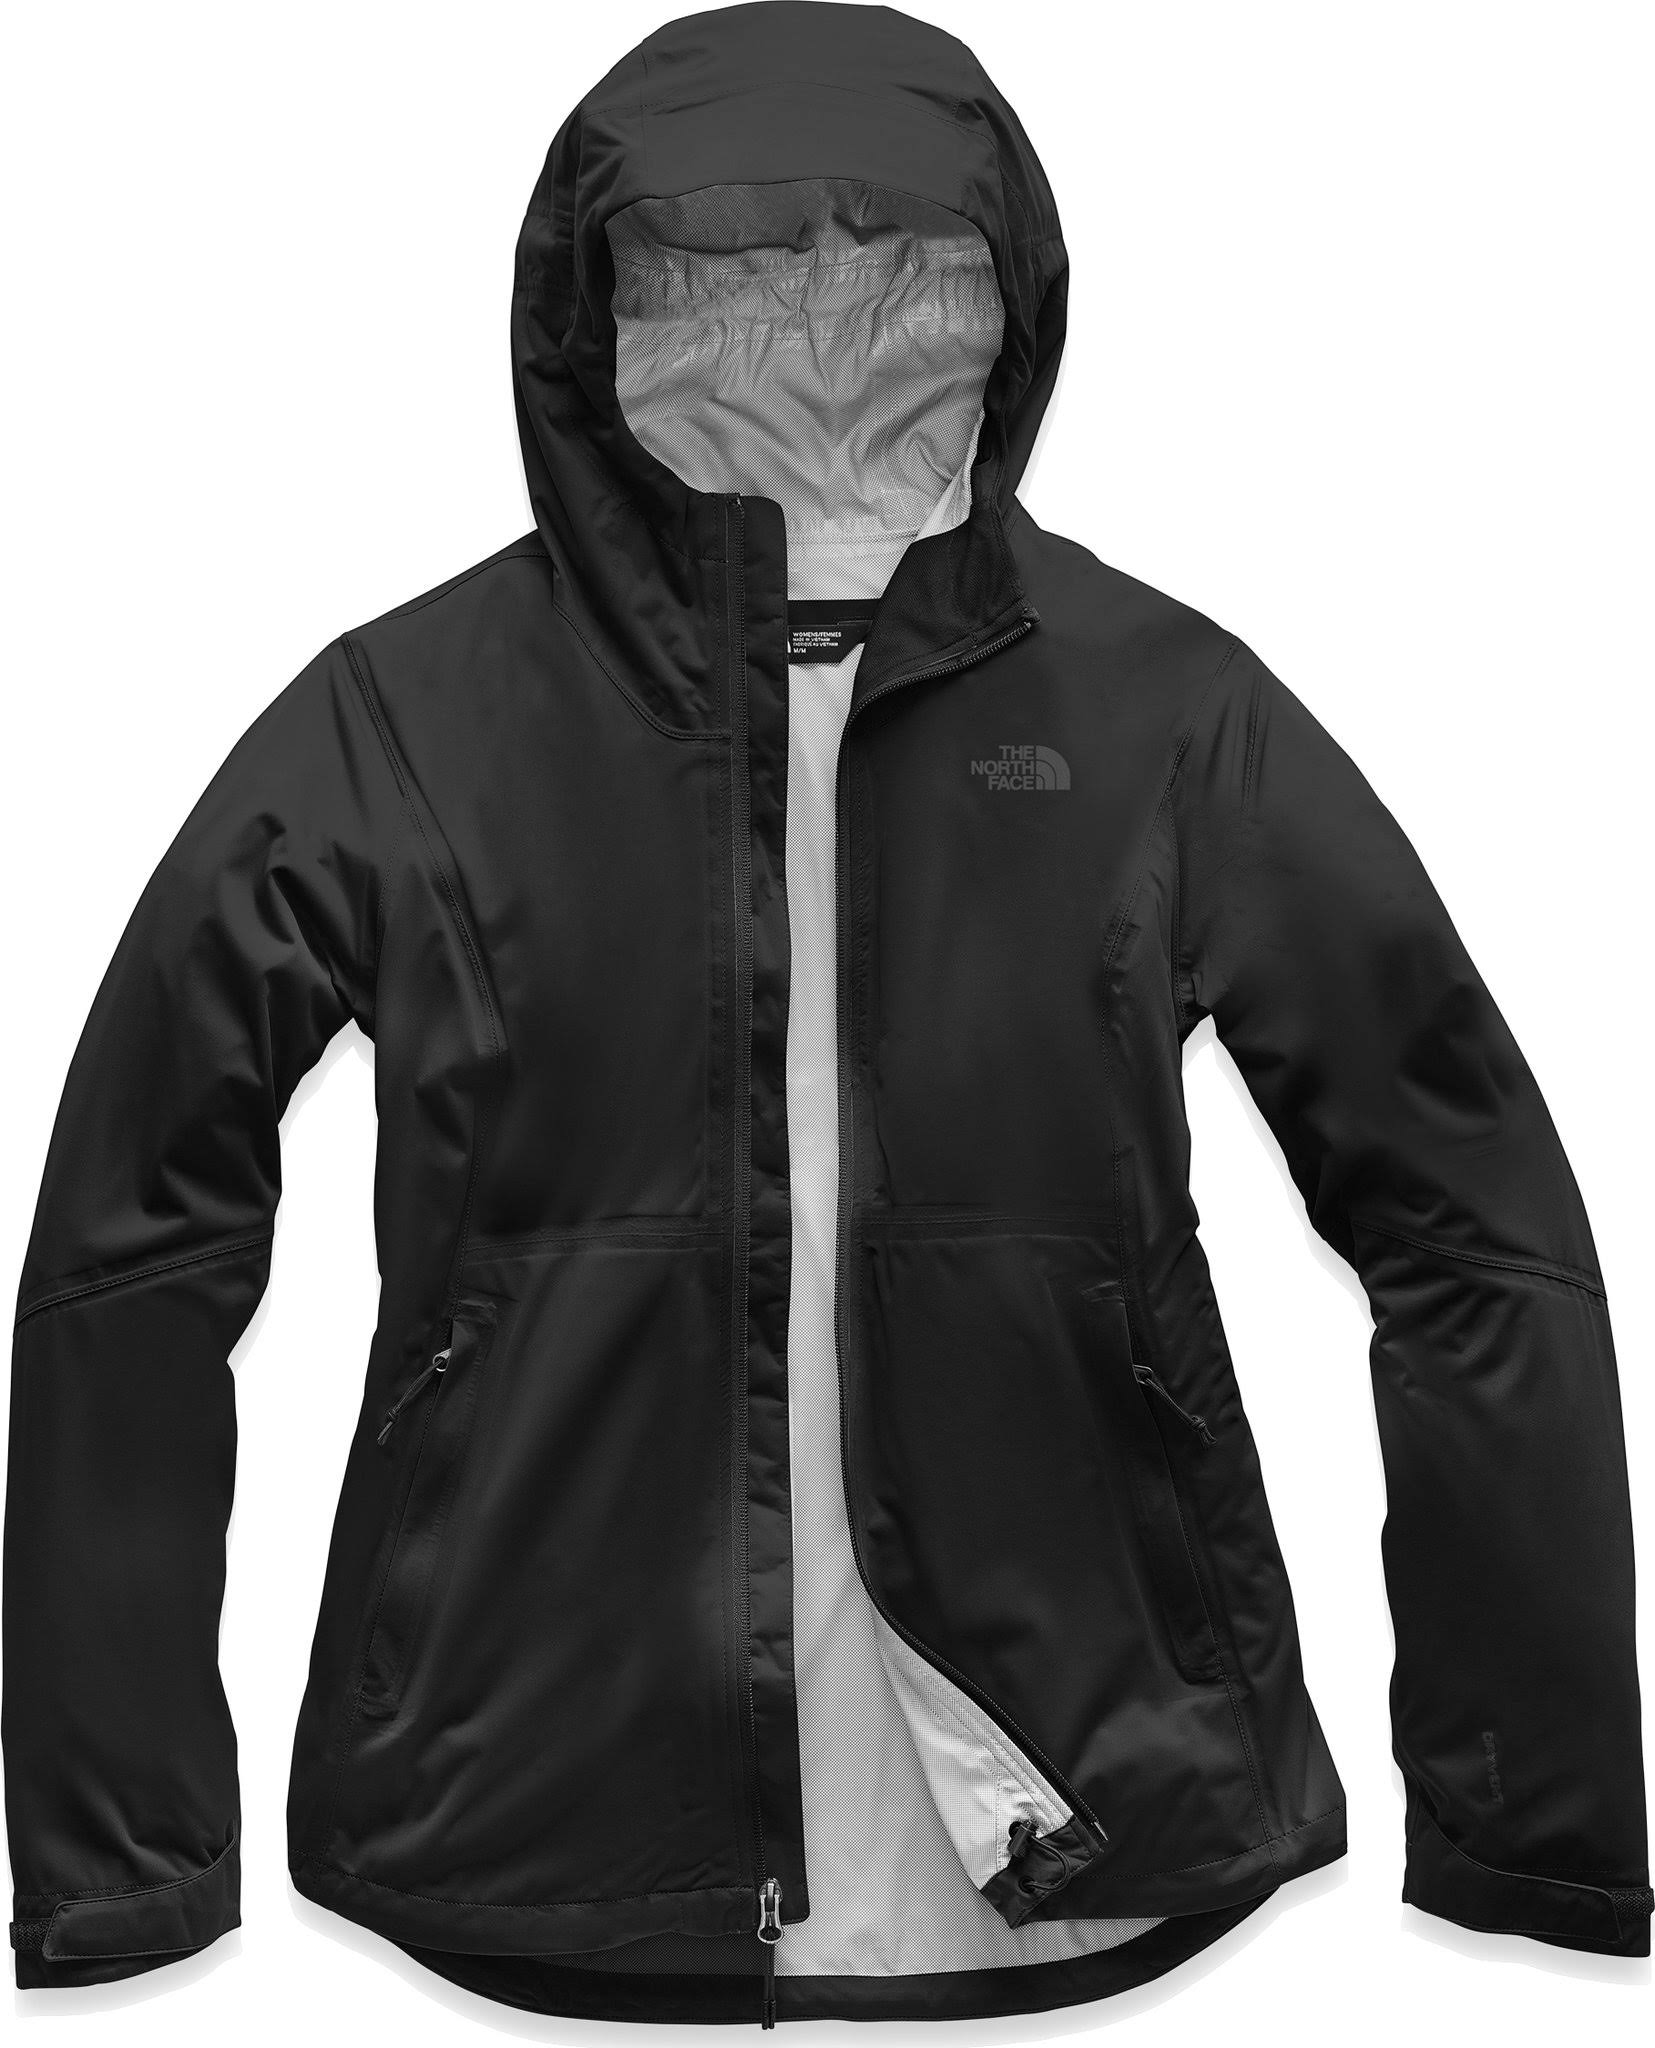 The North Face Women's Allproof Stretch Jacket - Black